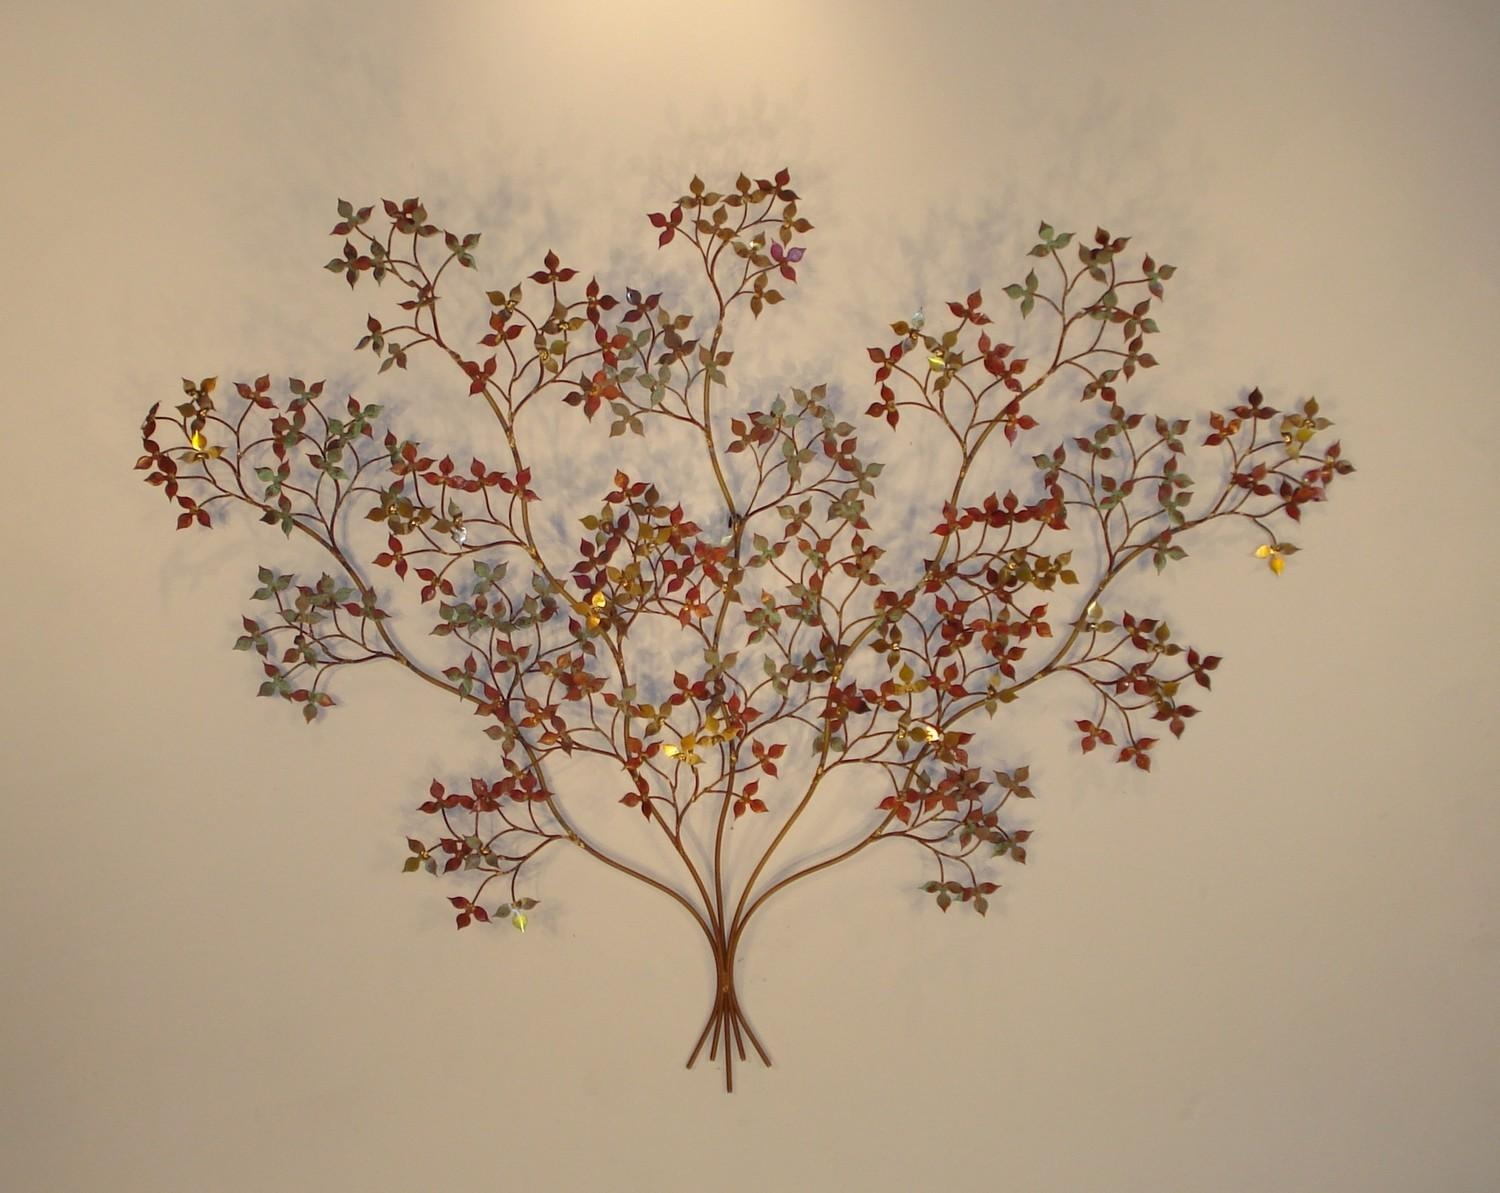 Indoor Metal Wall Art - Wall Art - Metal Sculpture - Metal Decor intended for Metal Wall Art Trees and Branches